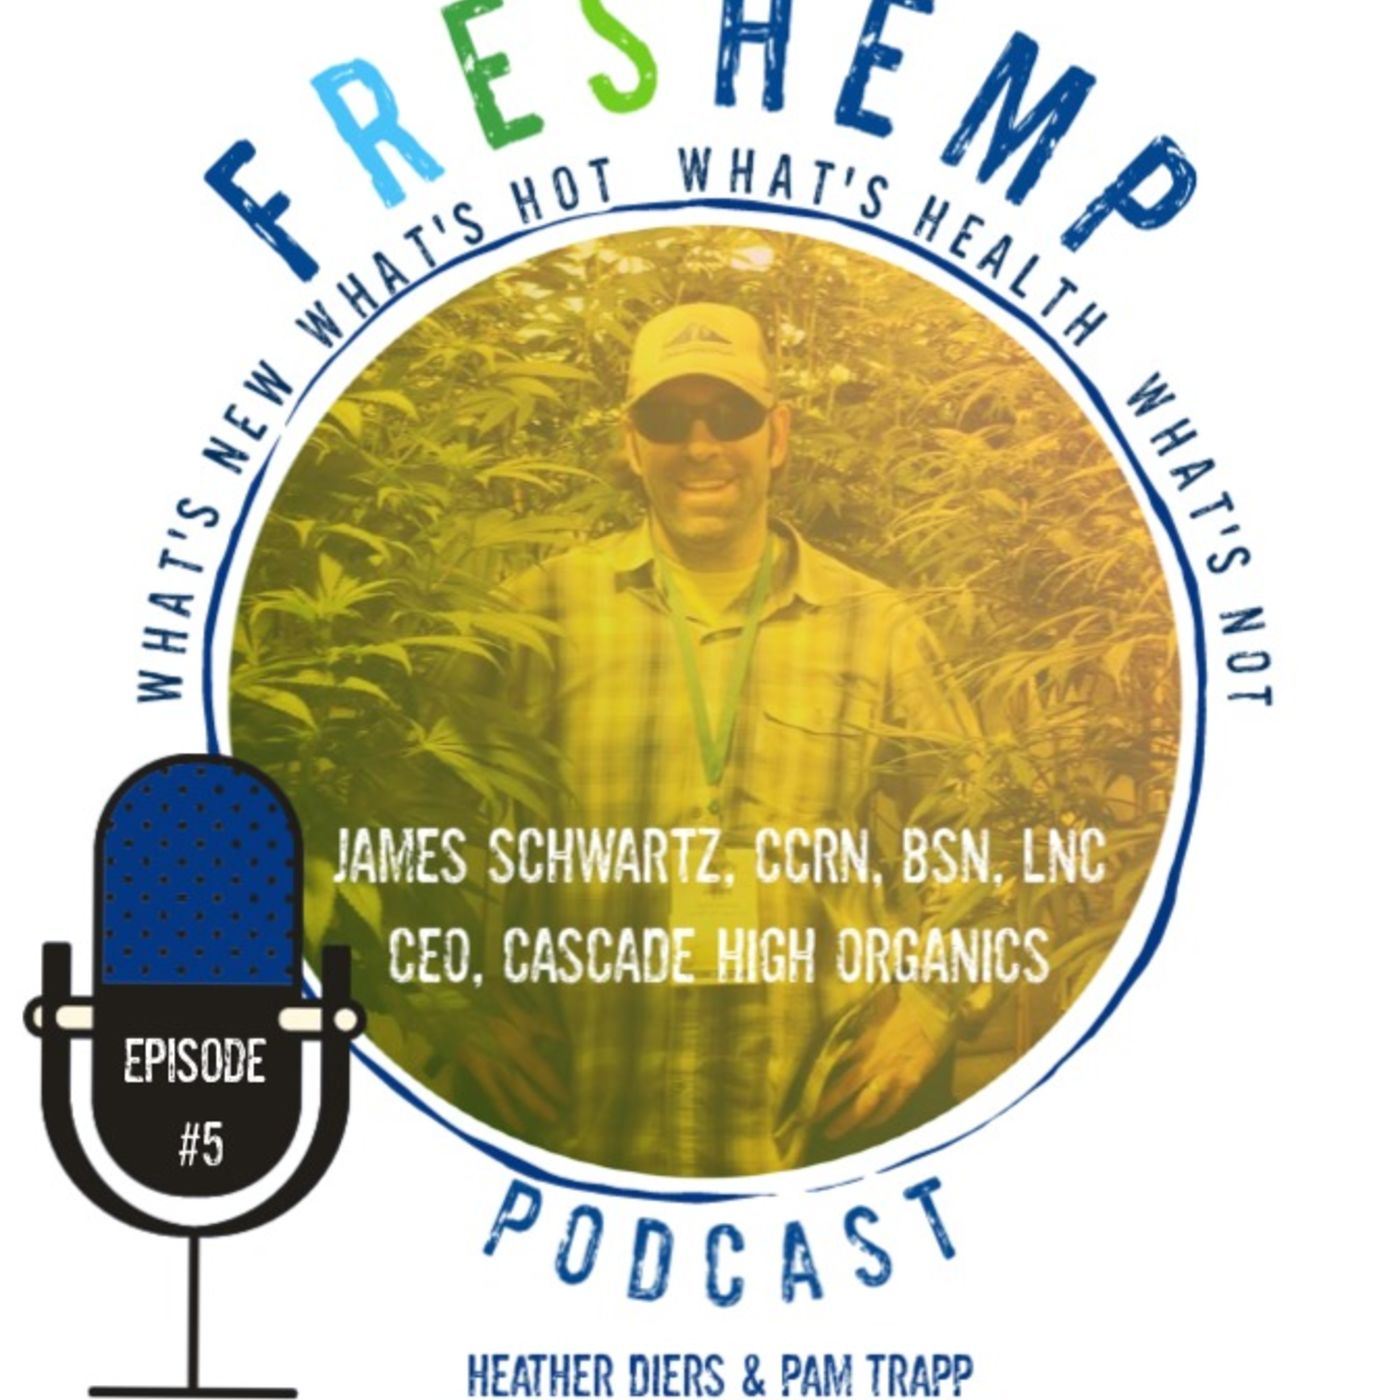 Growing to Heal - James Schwartz CCRN, BSN, LNC  CEO of Cascade High | Sustainable Organic Grower